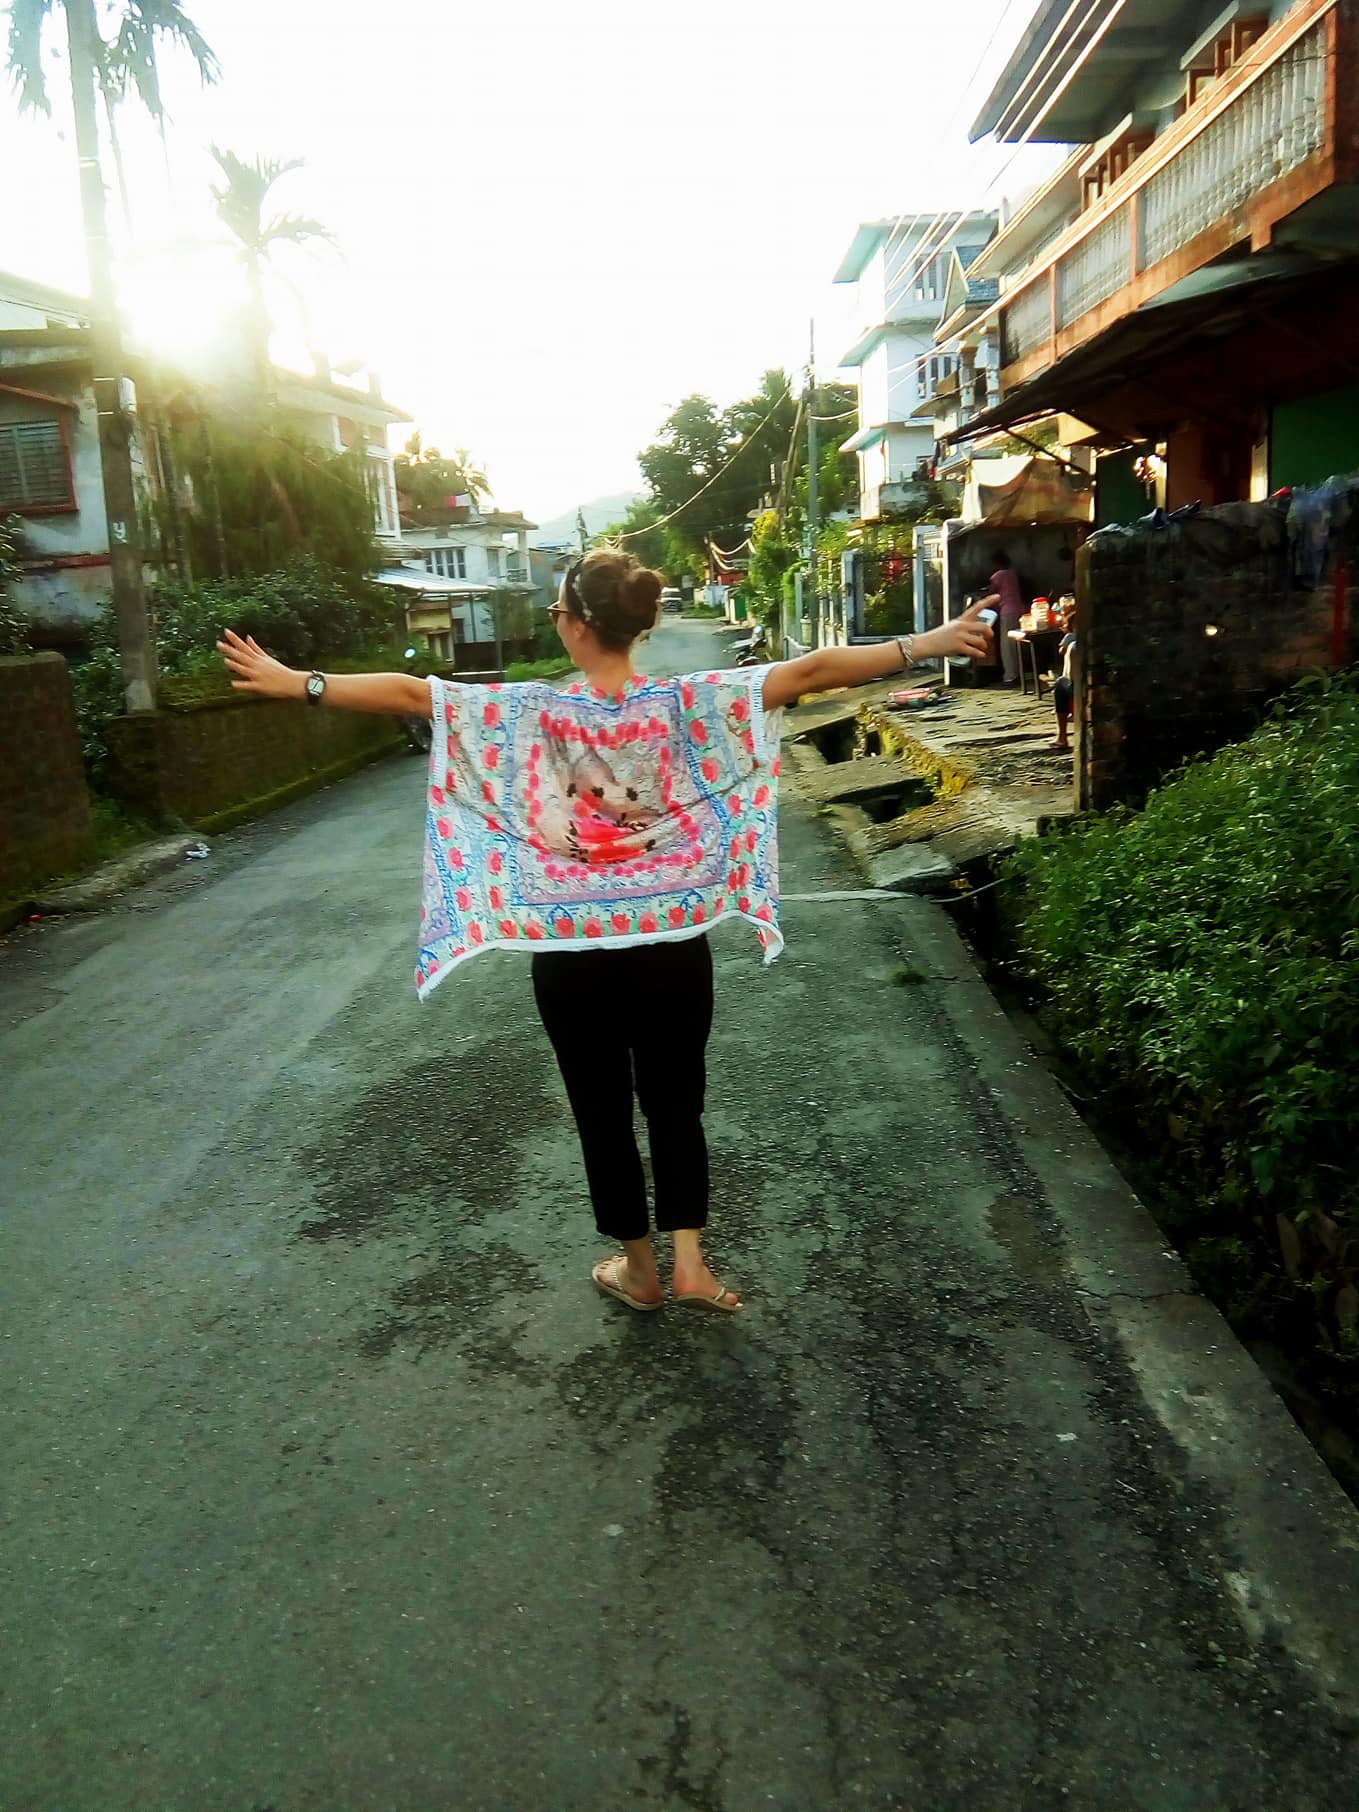 Strolling around in the streets of Dharan